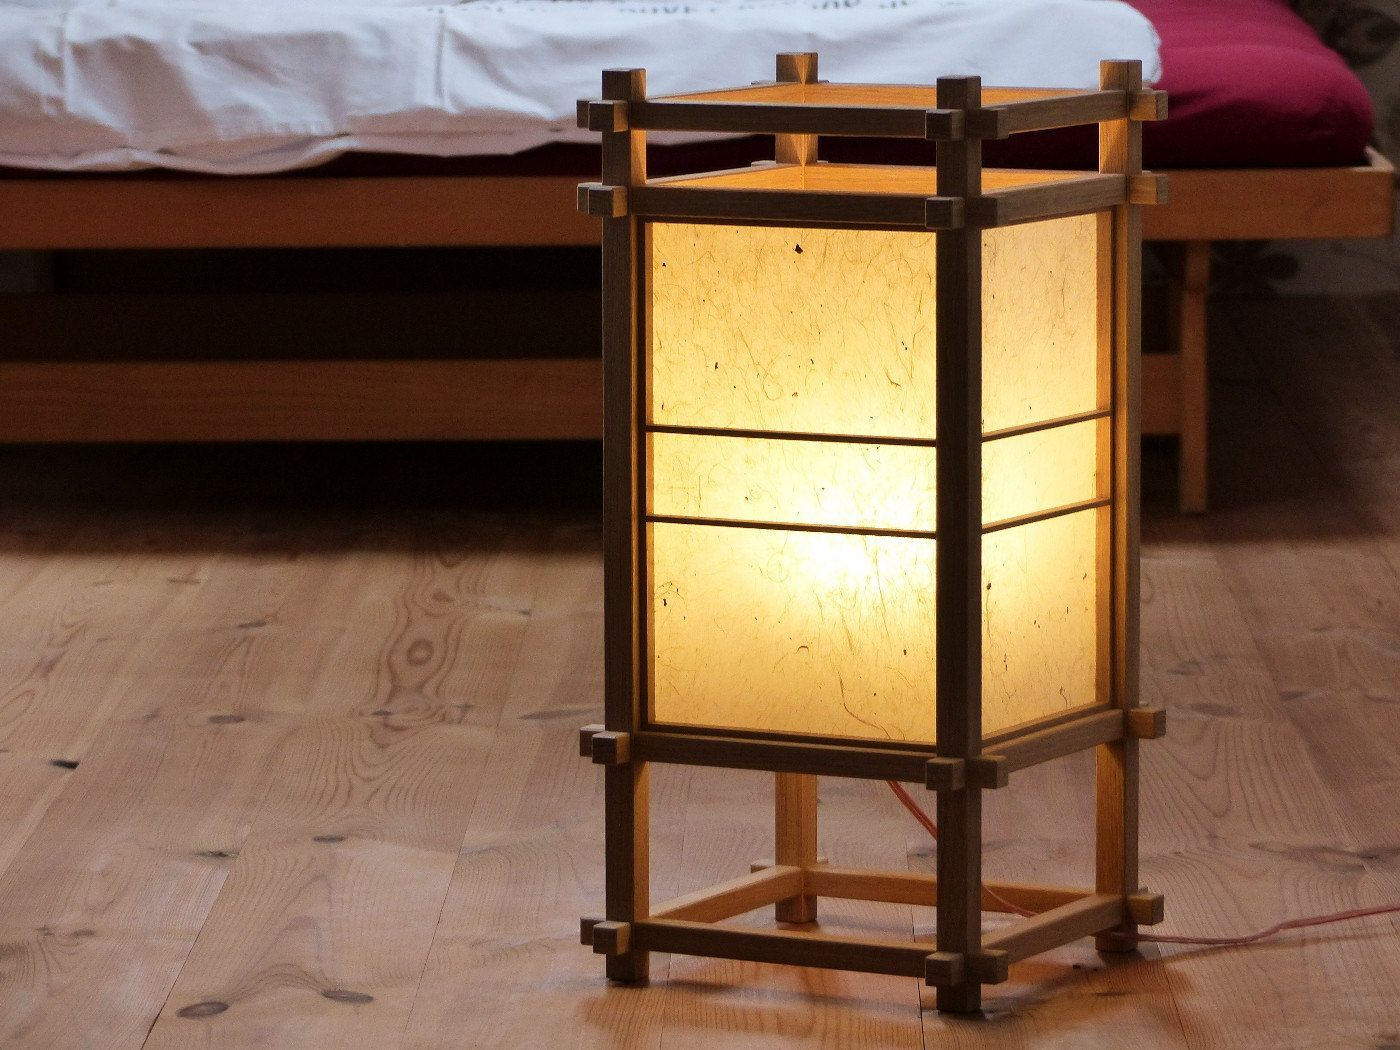 Cool 10 Japanese Style Table Lamps Antique Bedroom Bedside Design Diy Handmade Japanese Lampshade Si Japanese Lamps Table Lamp Wood Floor Lamp Design